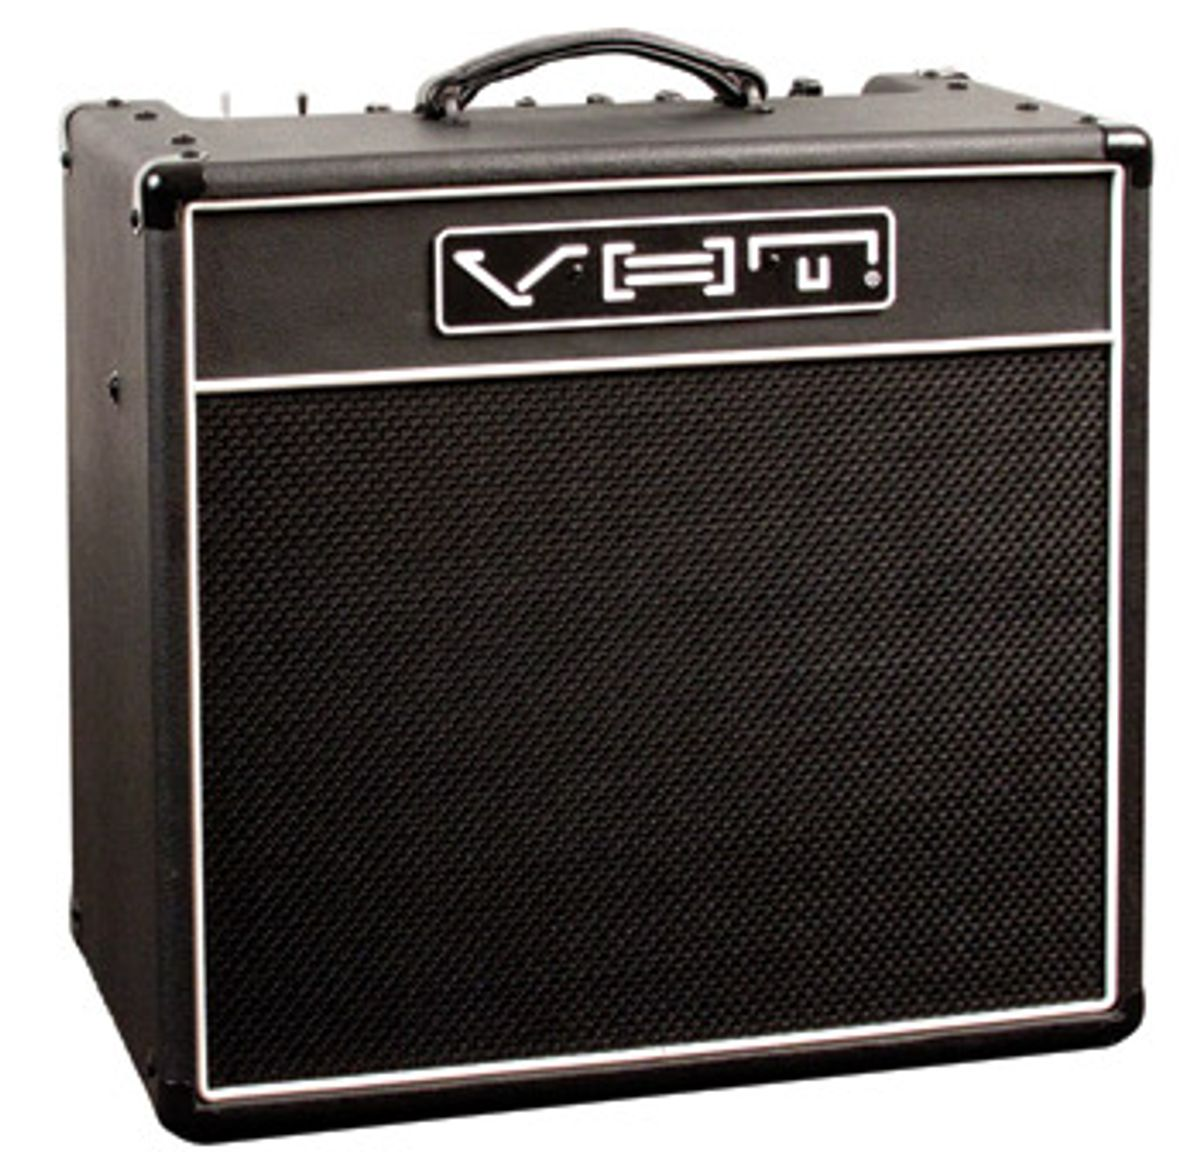 VHT Introduces the Special 12/20 Amp